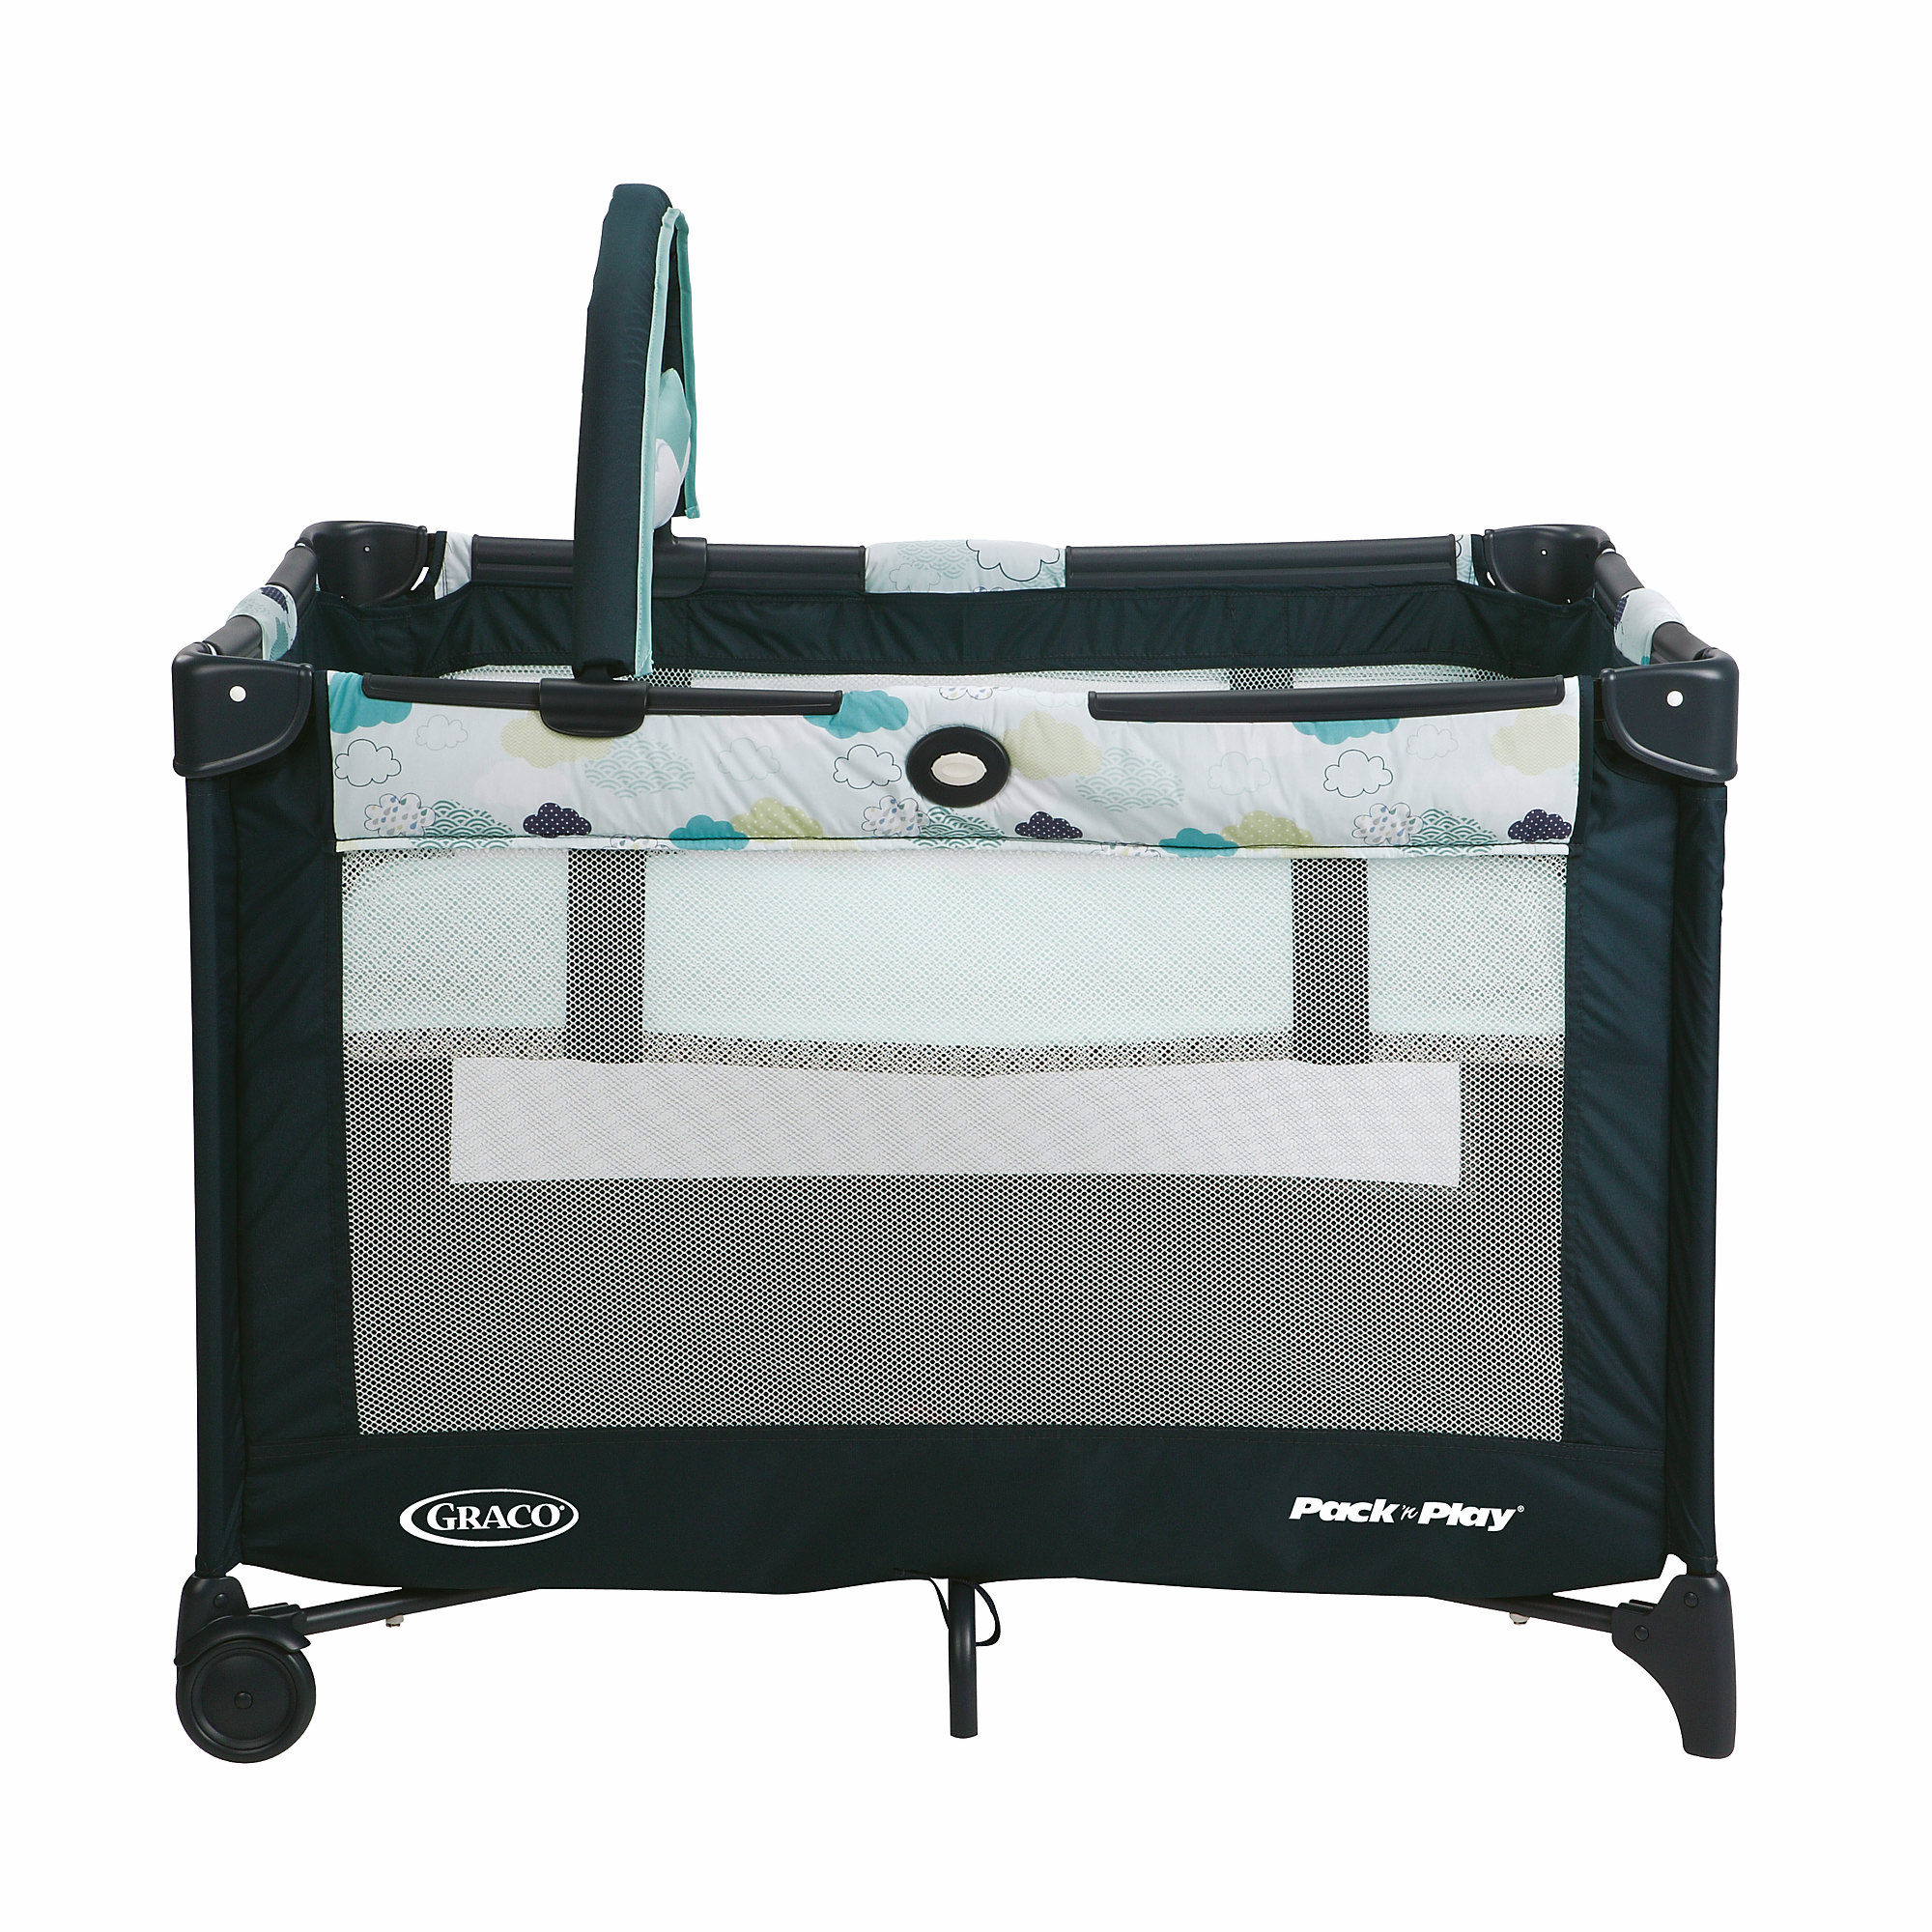 Graco Pack 'n Play Playard with Full Bassinet (bassinets - Wholesale Price